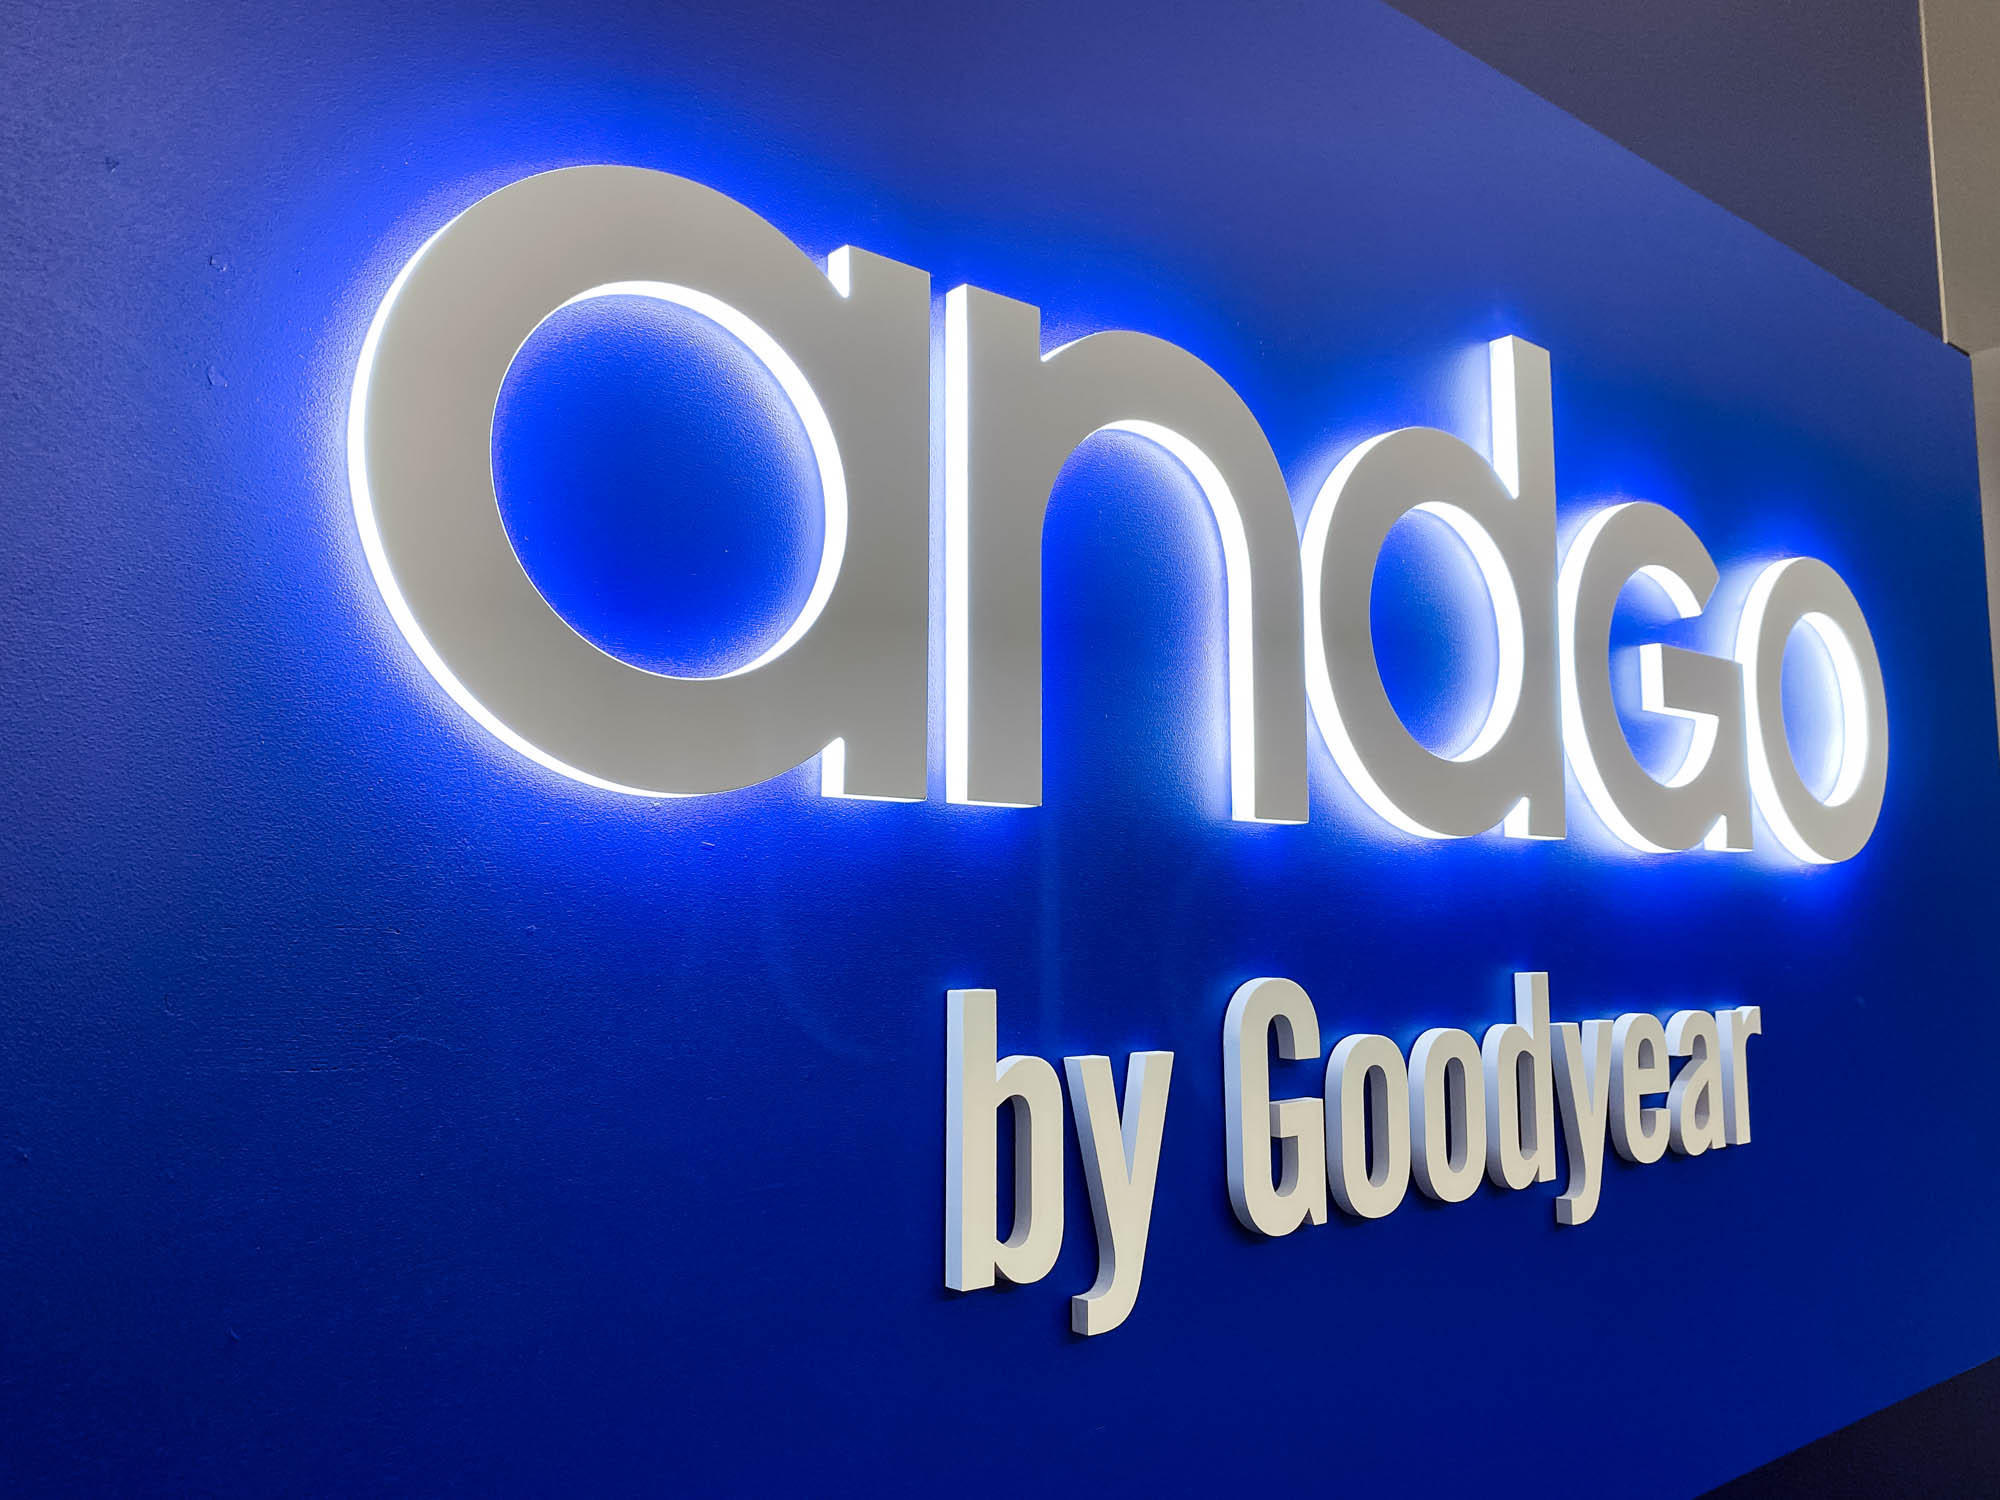 Illuminated, blue, edge-lit sign for the San Francisco office of andgo by Goodyear, a seamless vehicle-servicing platform designed to help consumer fleets monitor their service needs and improve their scheduling.